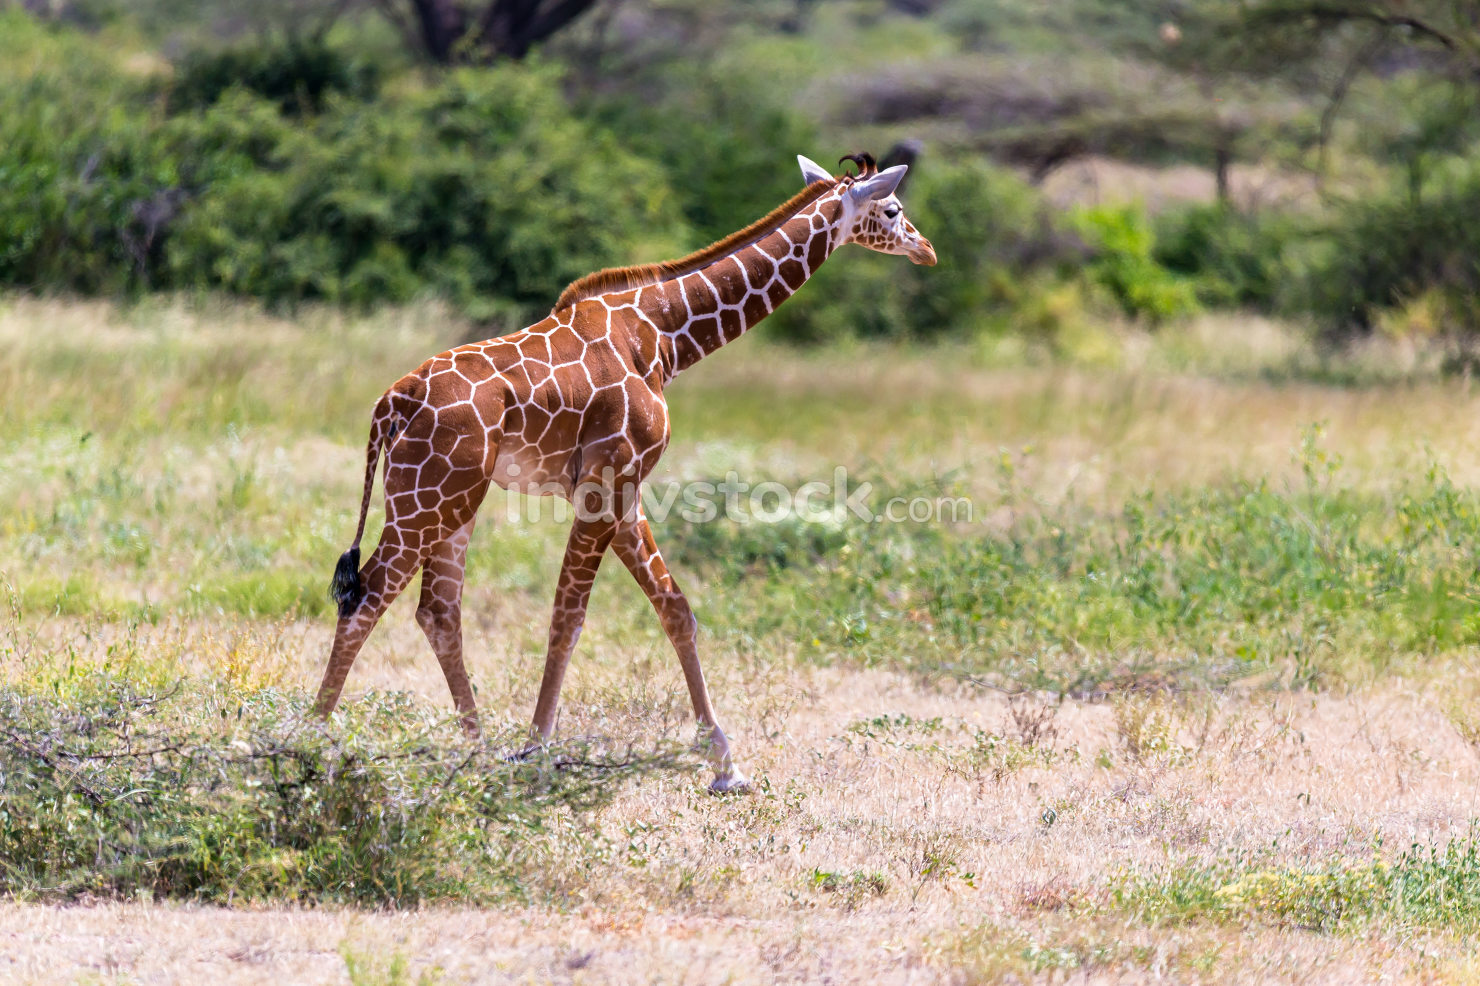 Giraffe walk through the savannah between the plants